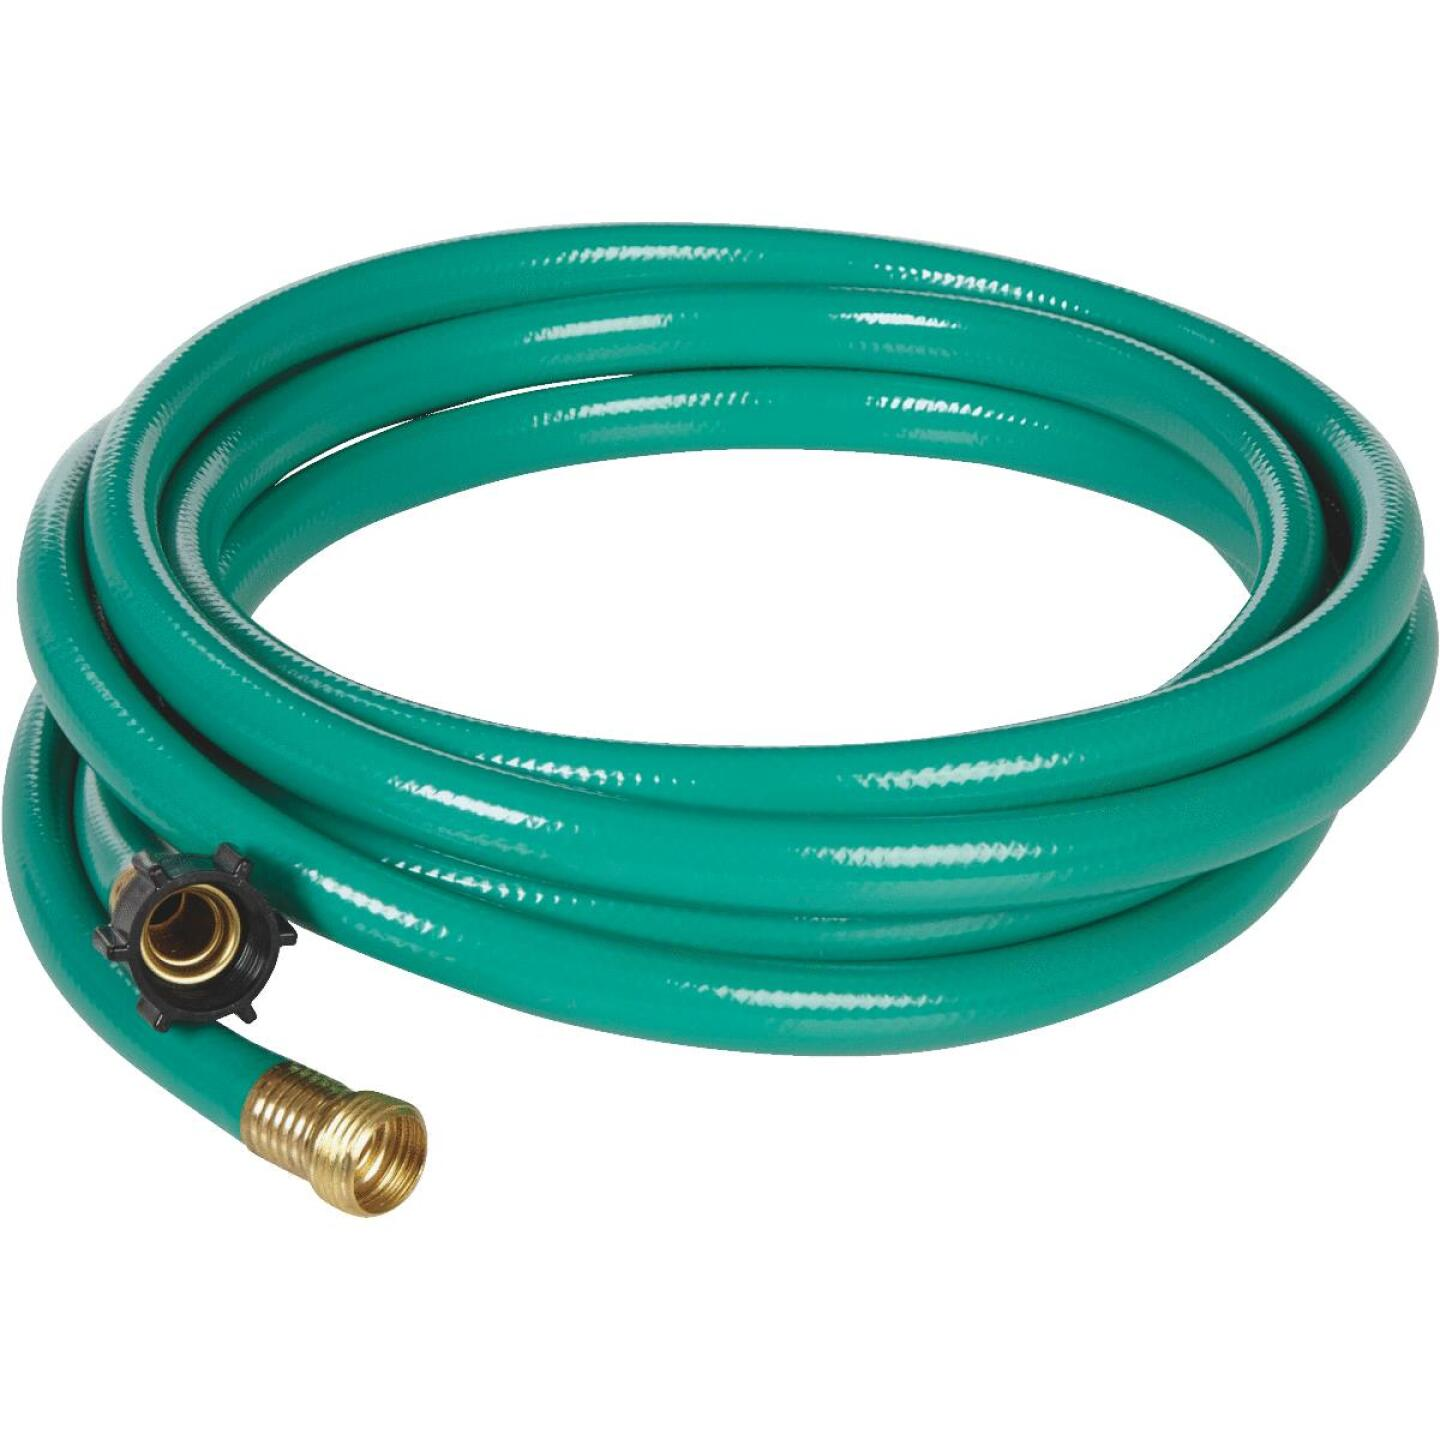 Best Garden 5/8 In. Dia. x 15 Ft. L. Leader Hose with Male & Female Couplings Image 2